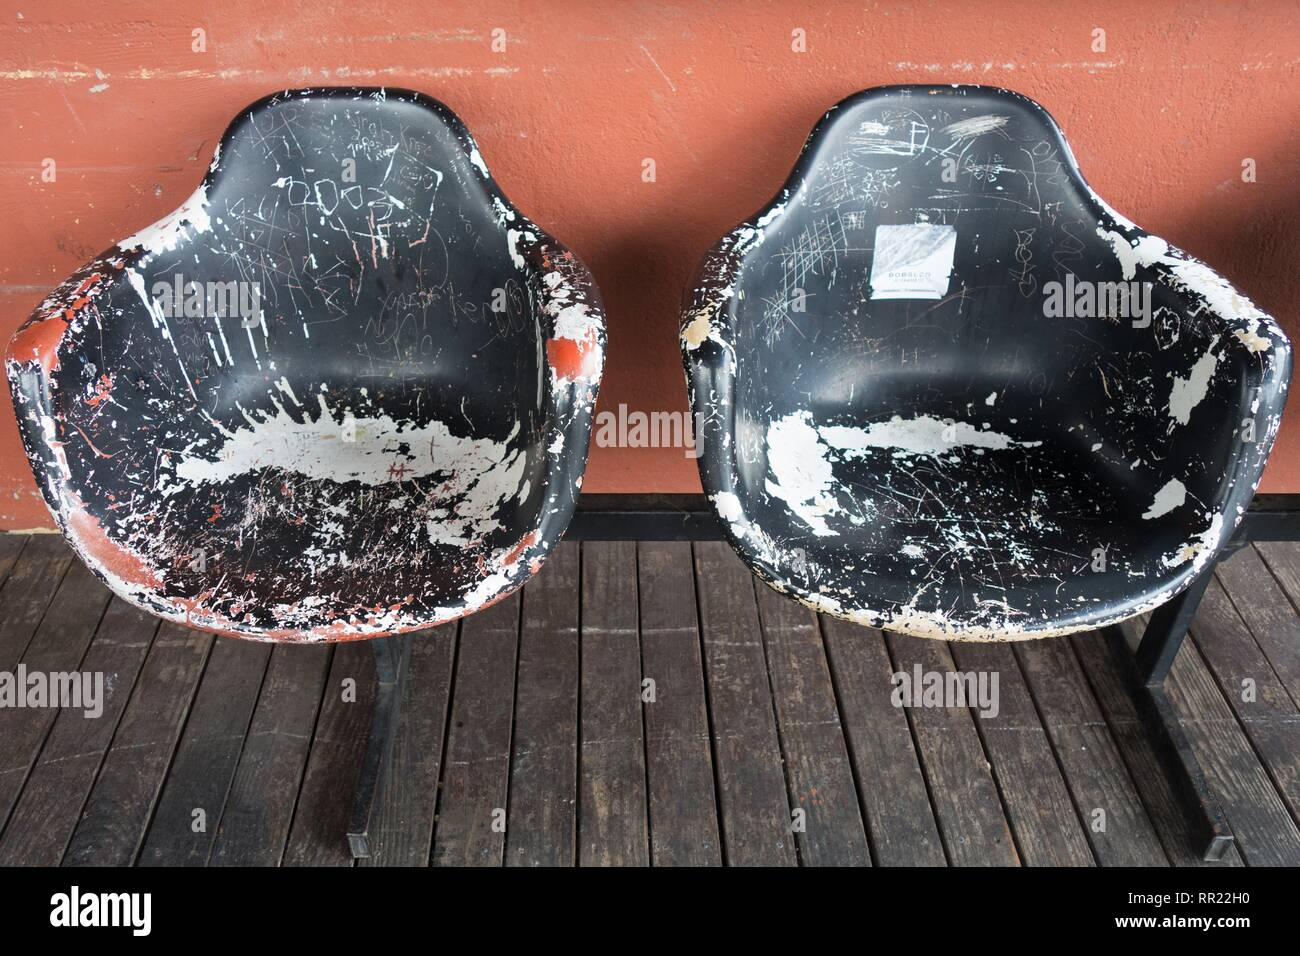 Scuffed up and scratched fiberglass chairs. - Stock Image